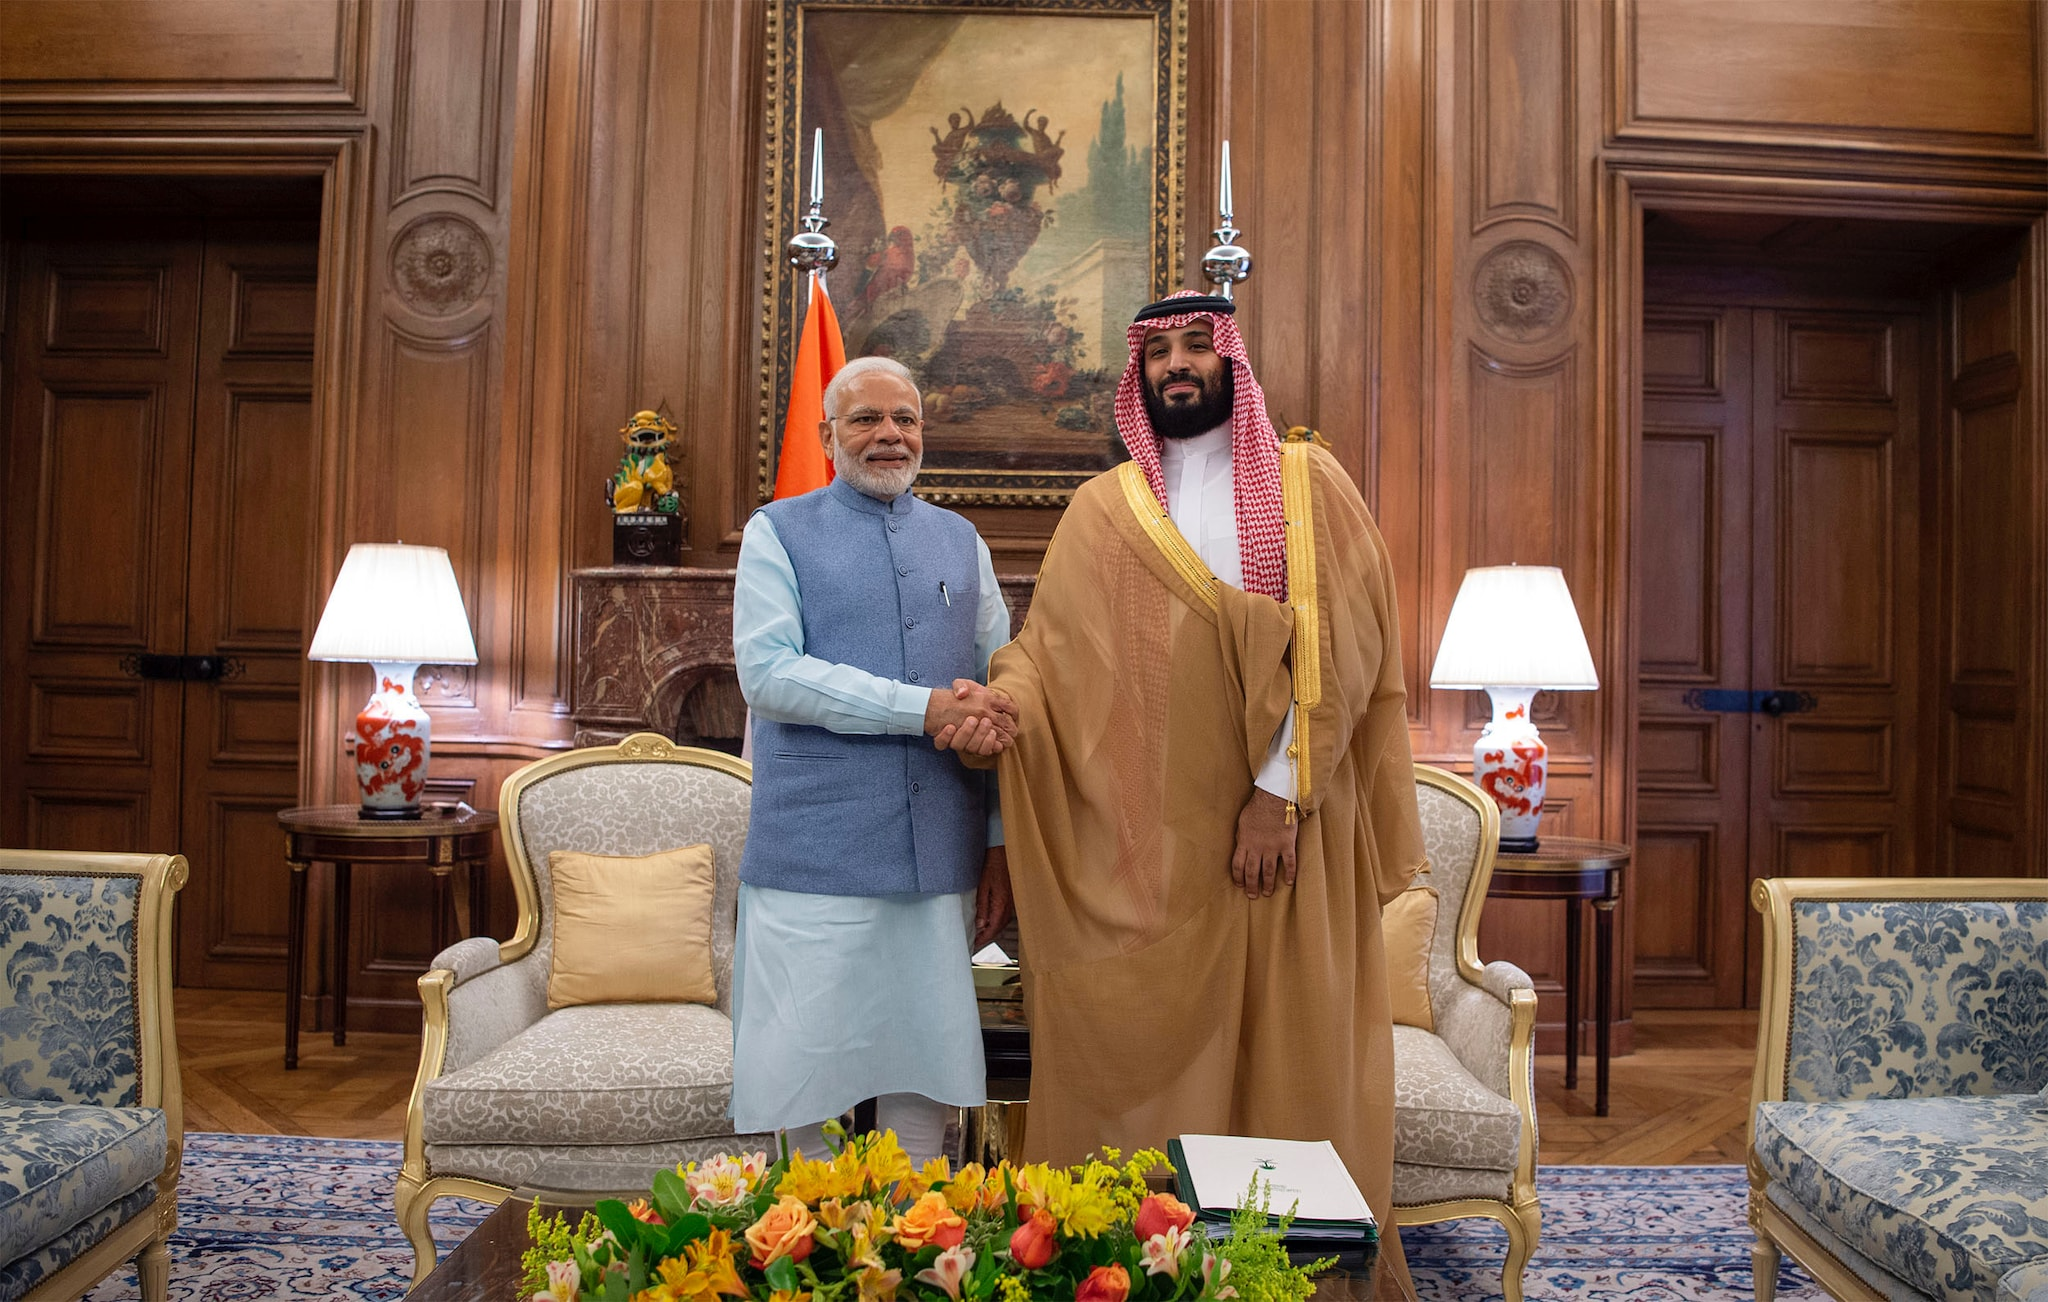 Saudi Arabia's Crown Prince Mohammed bin Salman shakes hands with Prime Minister Narendra Modi in Buenos Aires, Argentina November 29, 2018. Bandar Algaloud/Courtesy of Saudi Royal Court/Handout via REUTERS